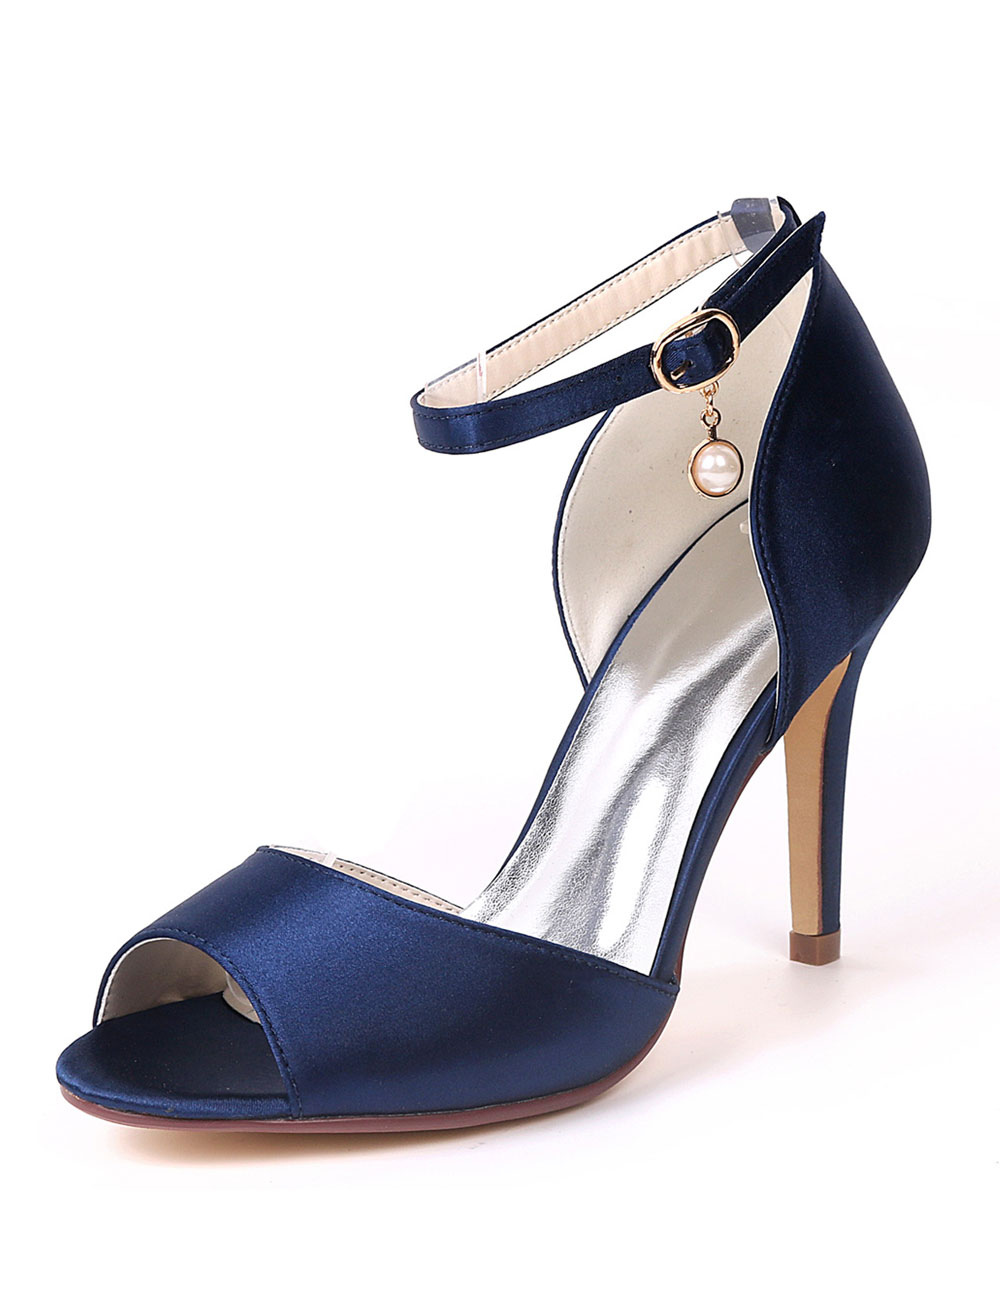 61e29a9a7860 Women High Heels Satin Peep Toe Ankle Strap Wedding Shoes Ink Blue Pearls  Mother Shoes - Milanoo.com